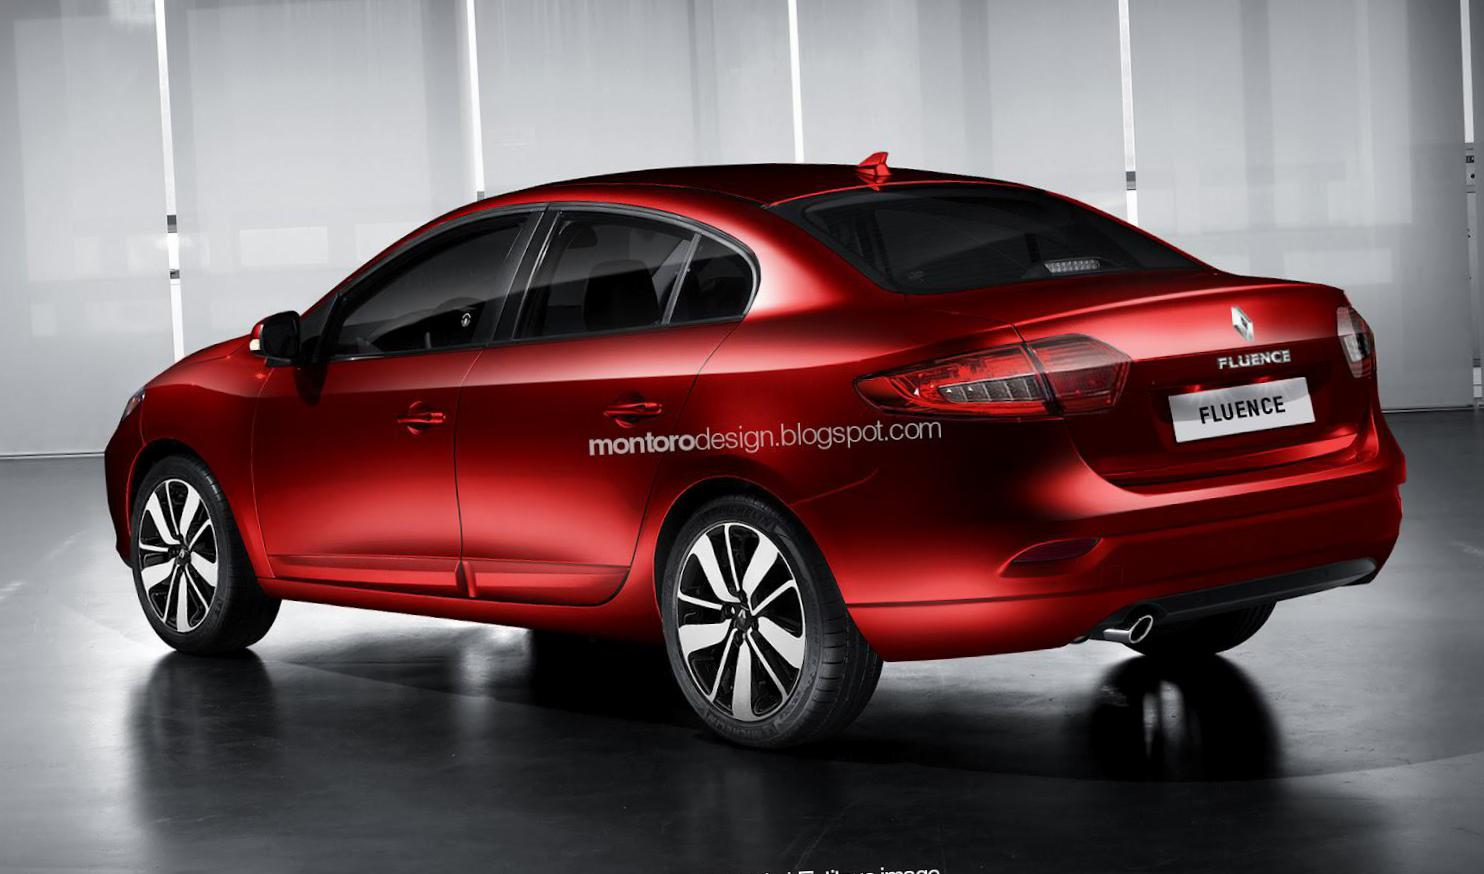 Renault Fluence Photos And Specs Photo Renault Fluence Reviews And 25 Perfect Photos Of Renault Fluence